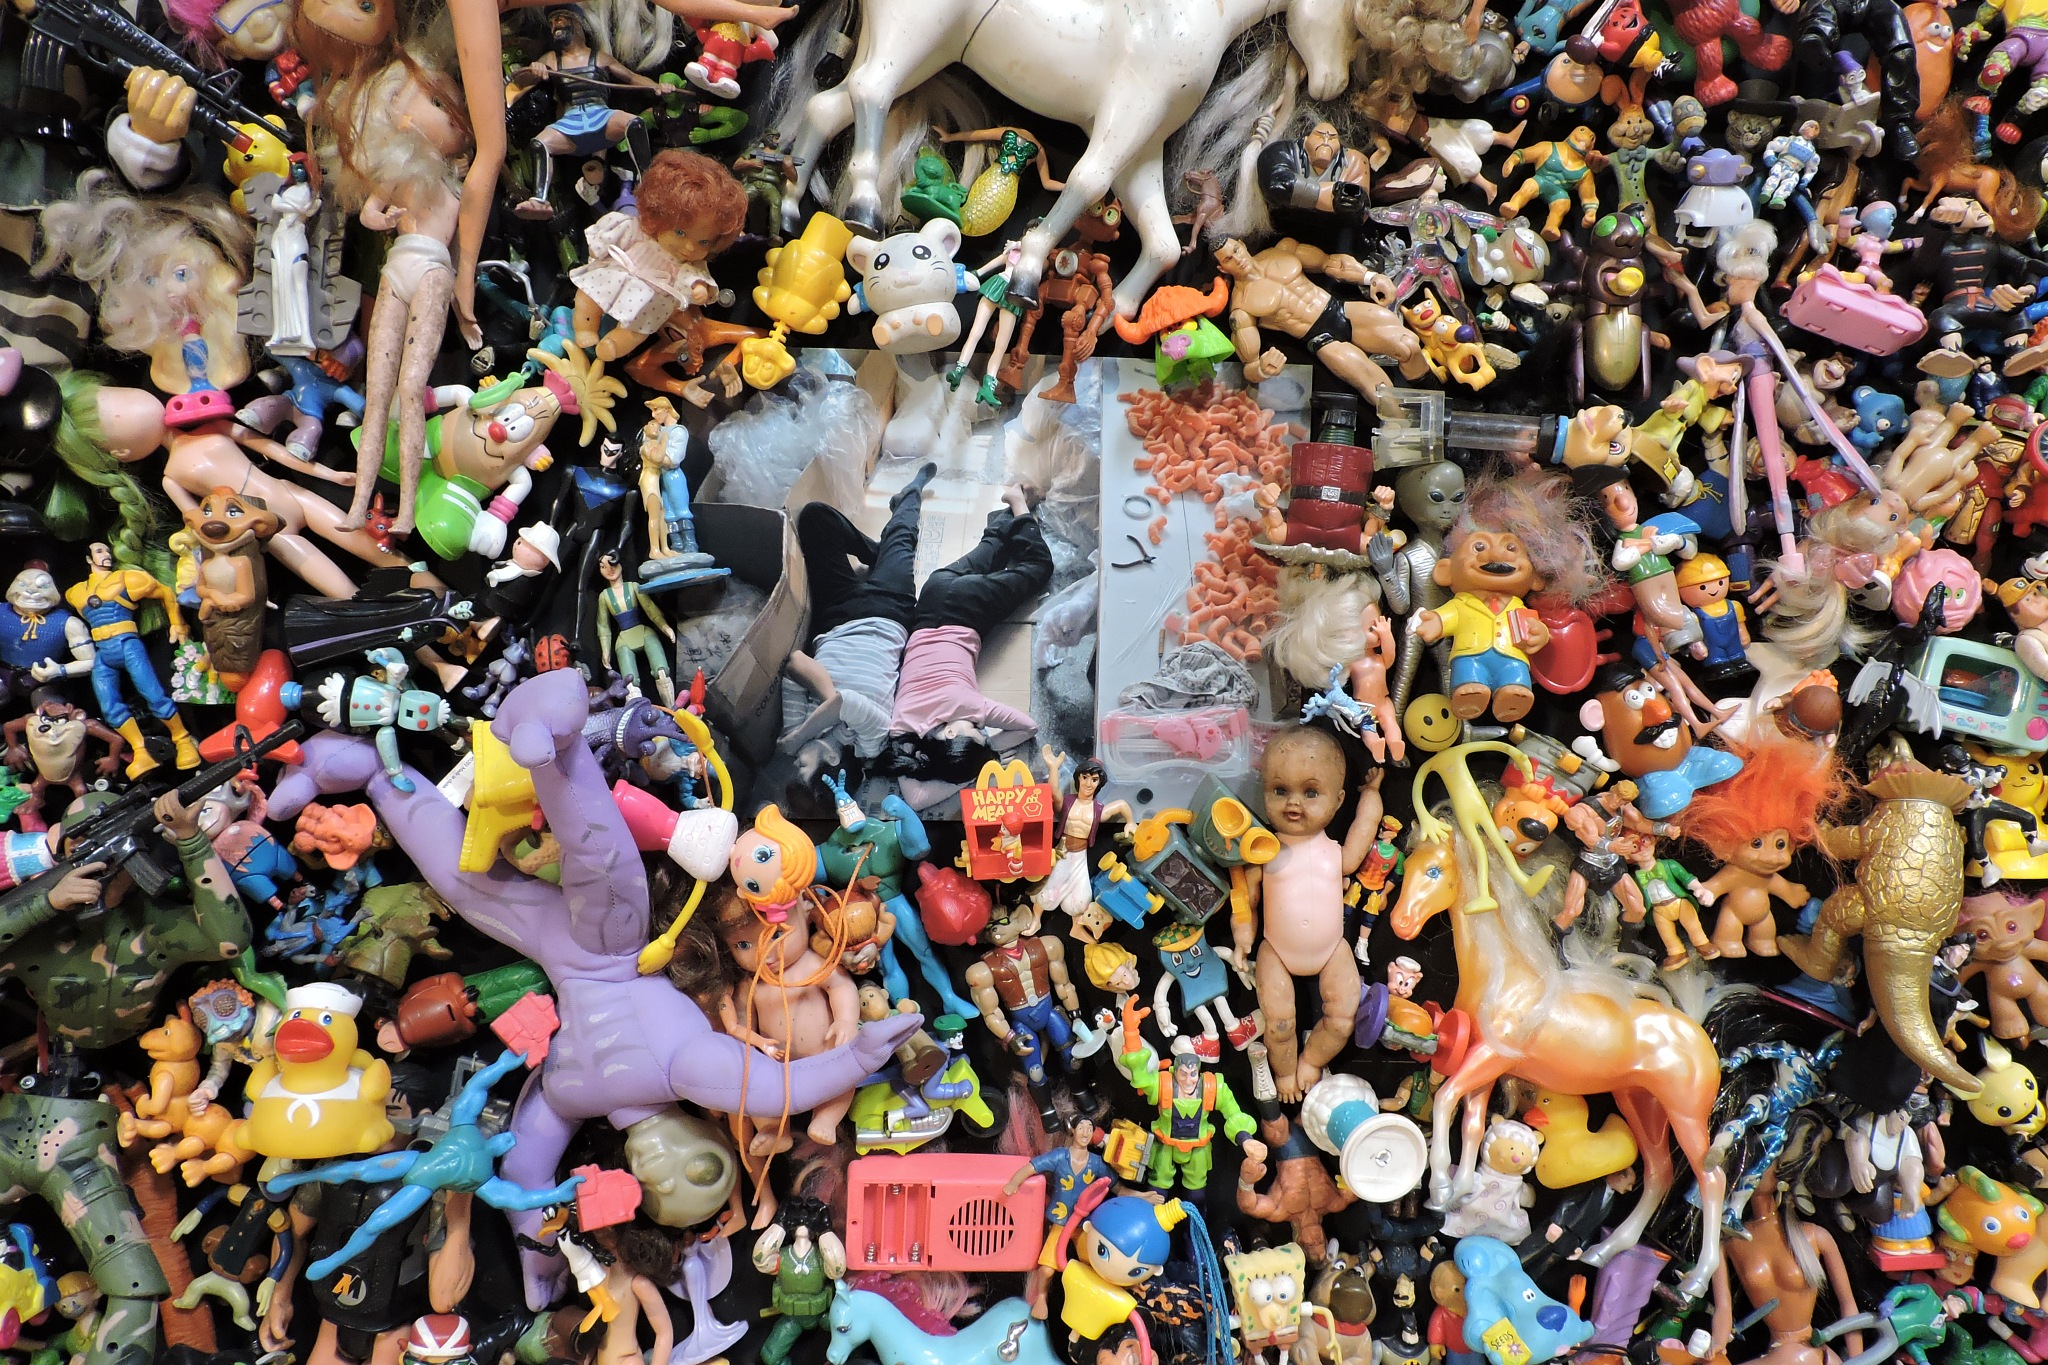 Michael Wolf, The Real Toy Story | Les Rencontres de la photographie, Arles by Ana Botelho